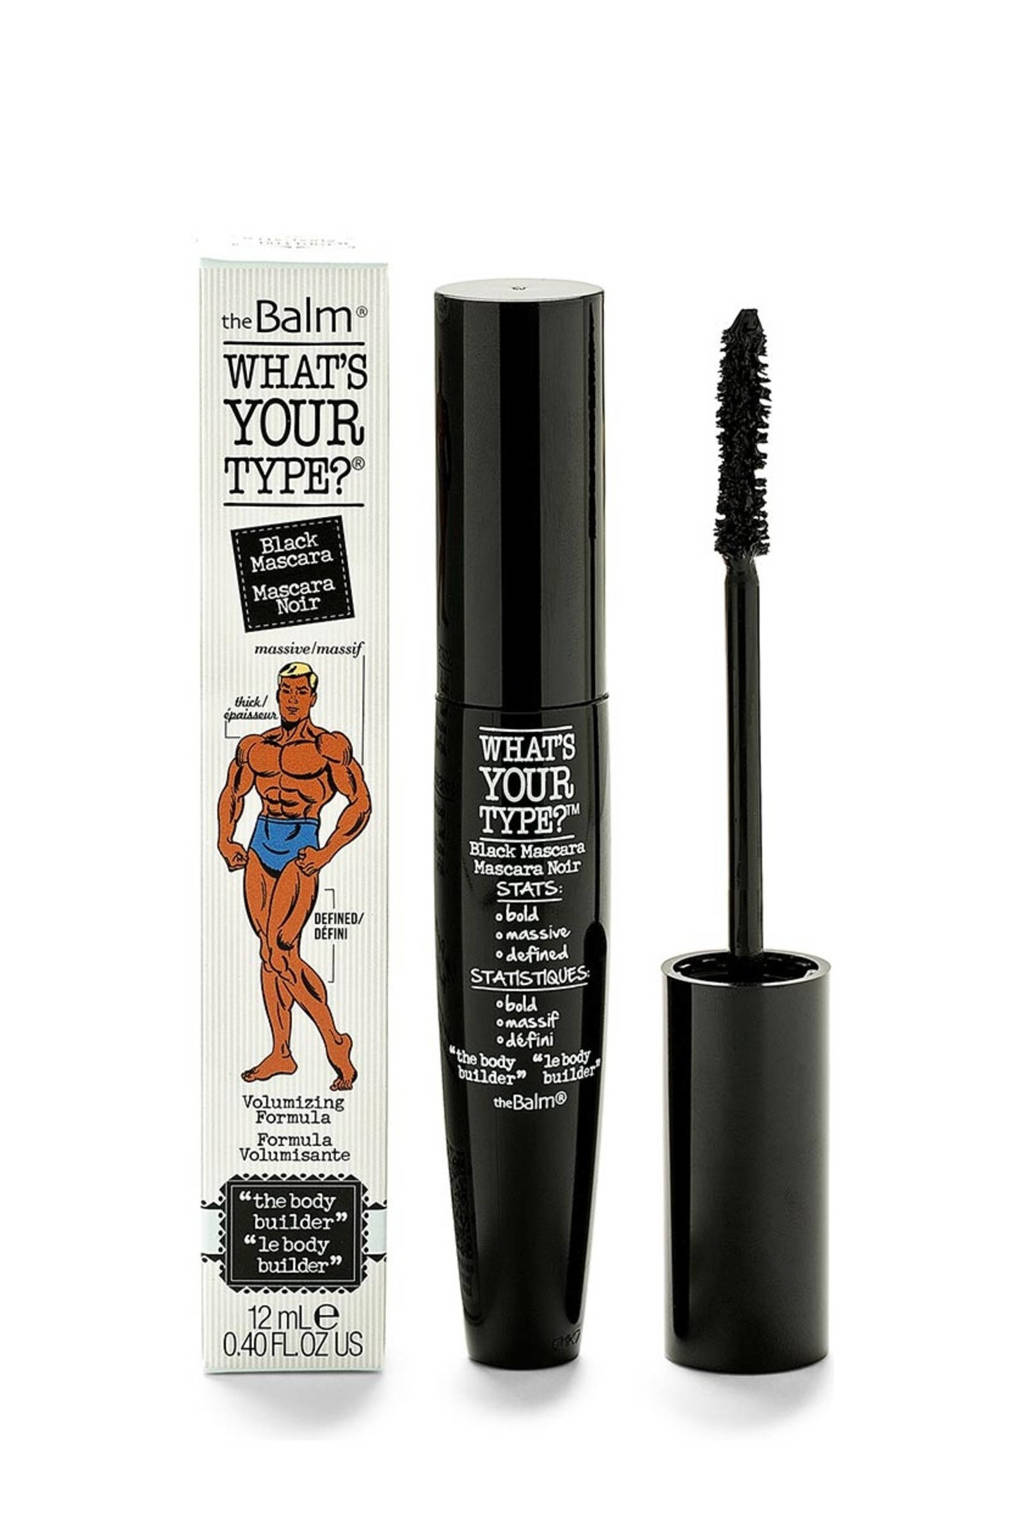 The Balm What's Your Type mascara, Black